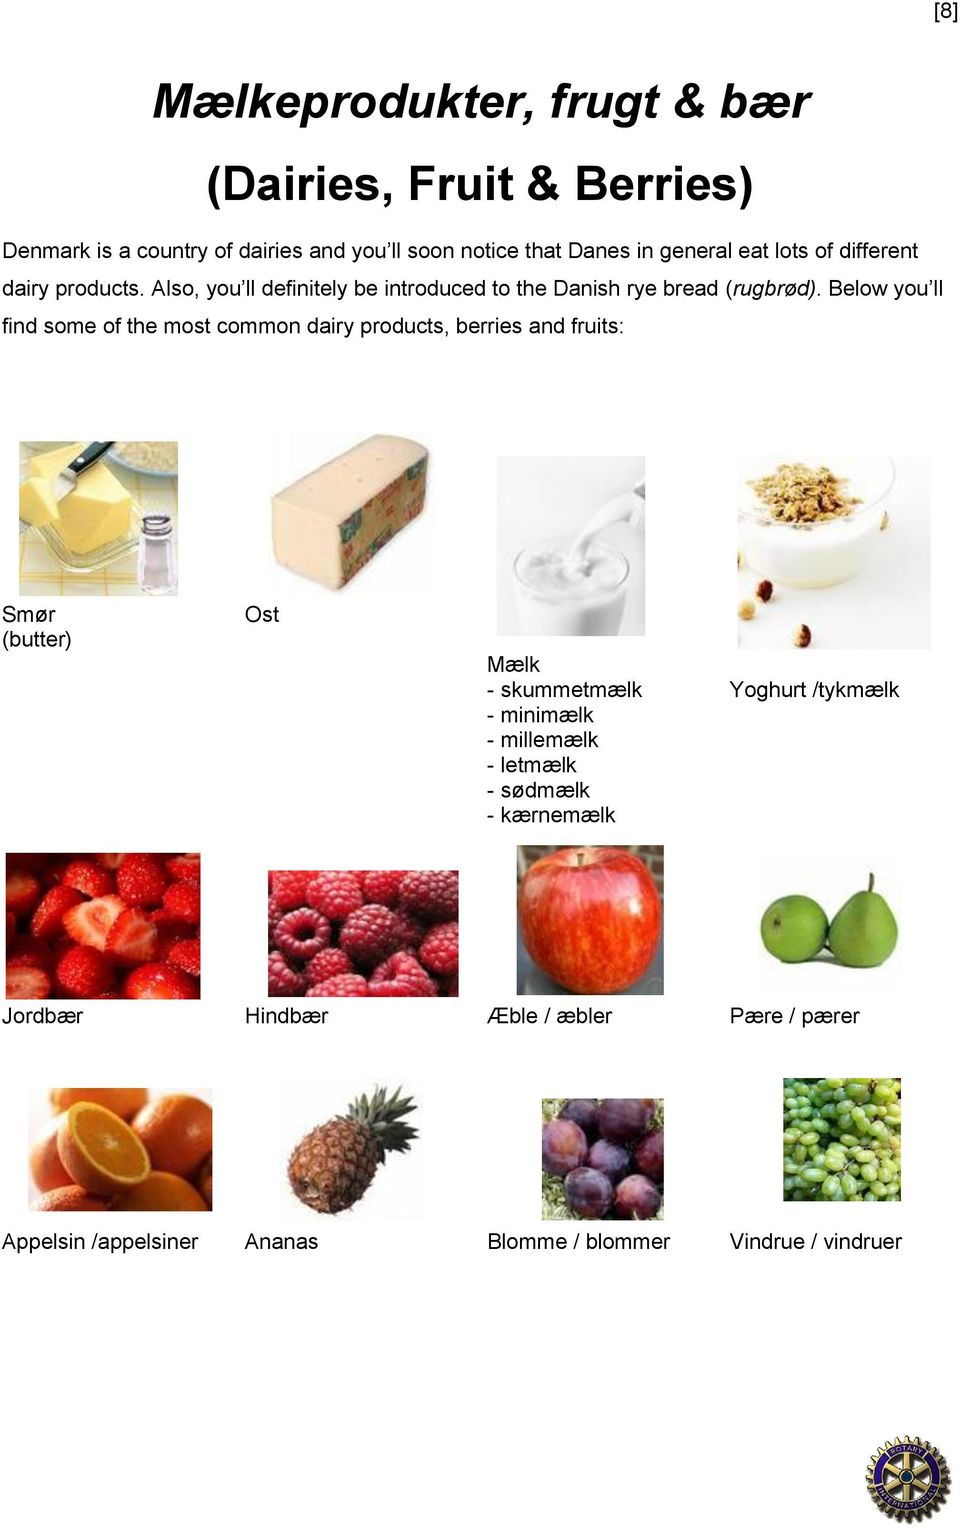 Below you ll find some of the most common dairy products, berries and fruits: Smør (butter) Ost Mælk - skummetmælk - minimælk -